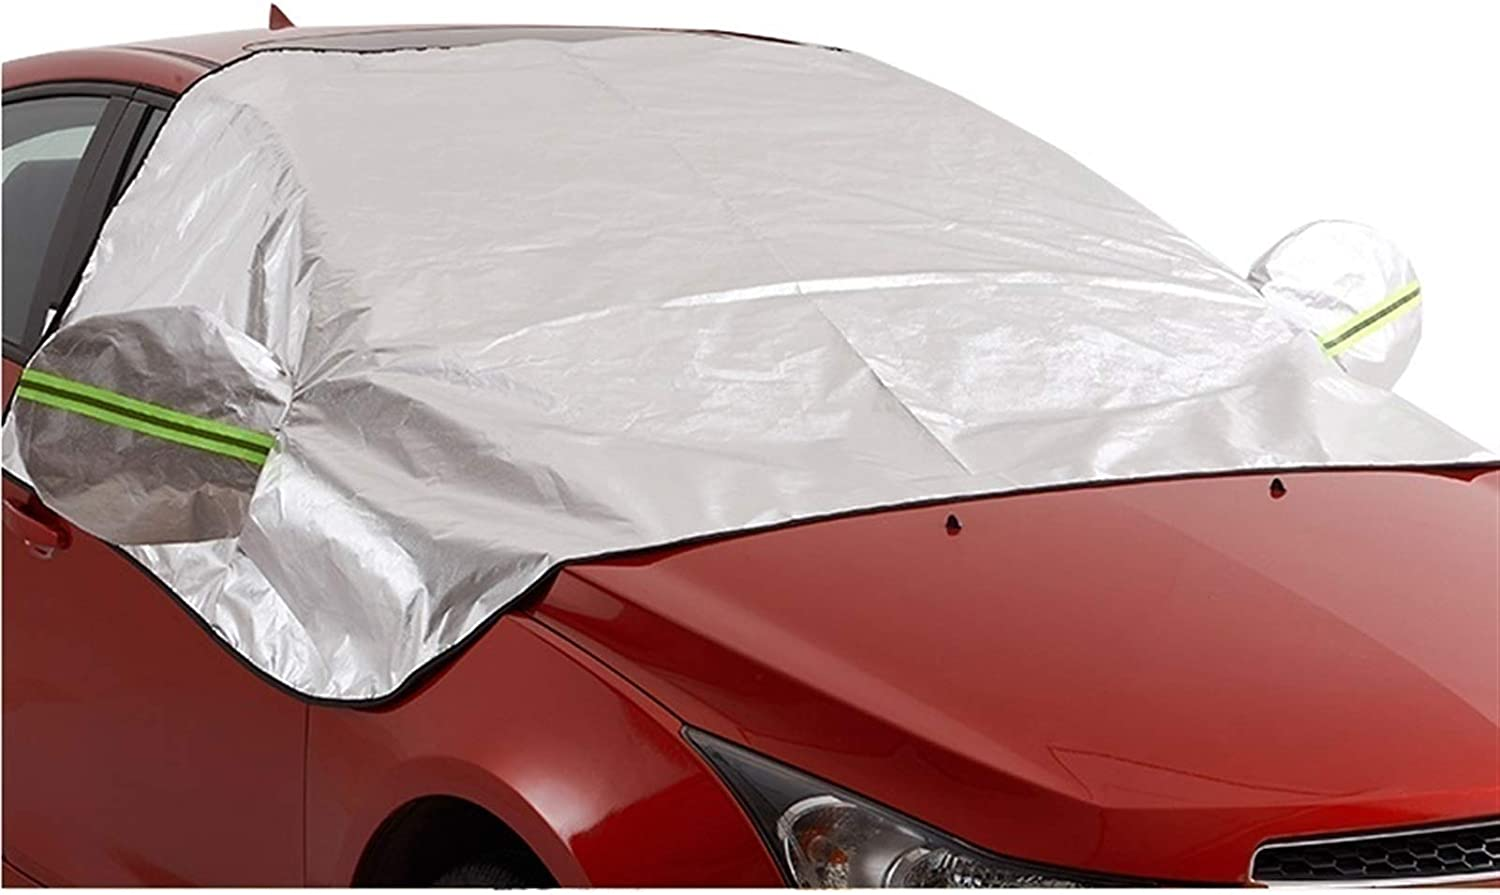 BACKJIA Car Cover Detroit Mall Windshield H Latest item Outdoor Waterproof Durable